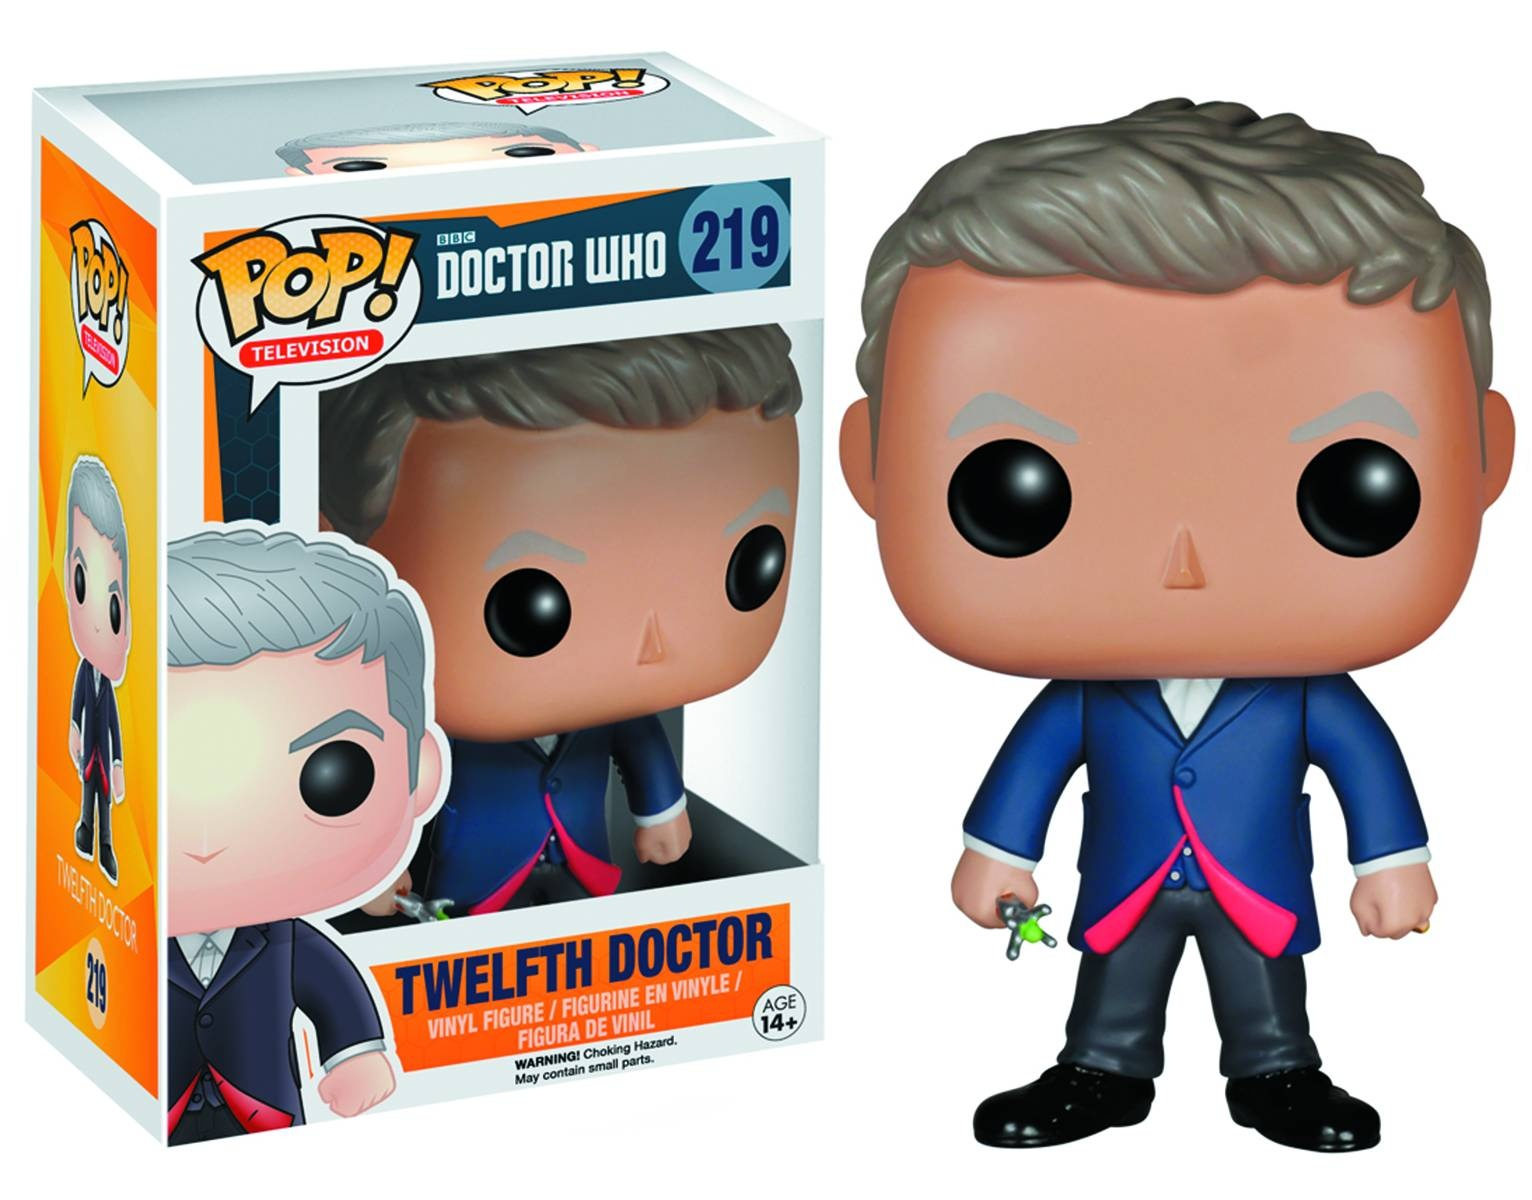 POP DOCTOR WHO 12TH DOCTOR VINYL FIG